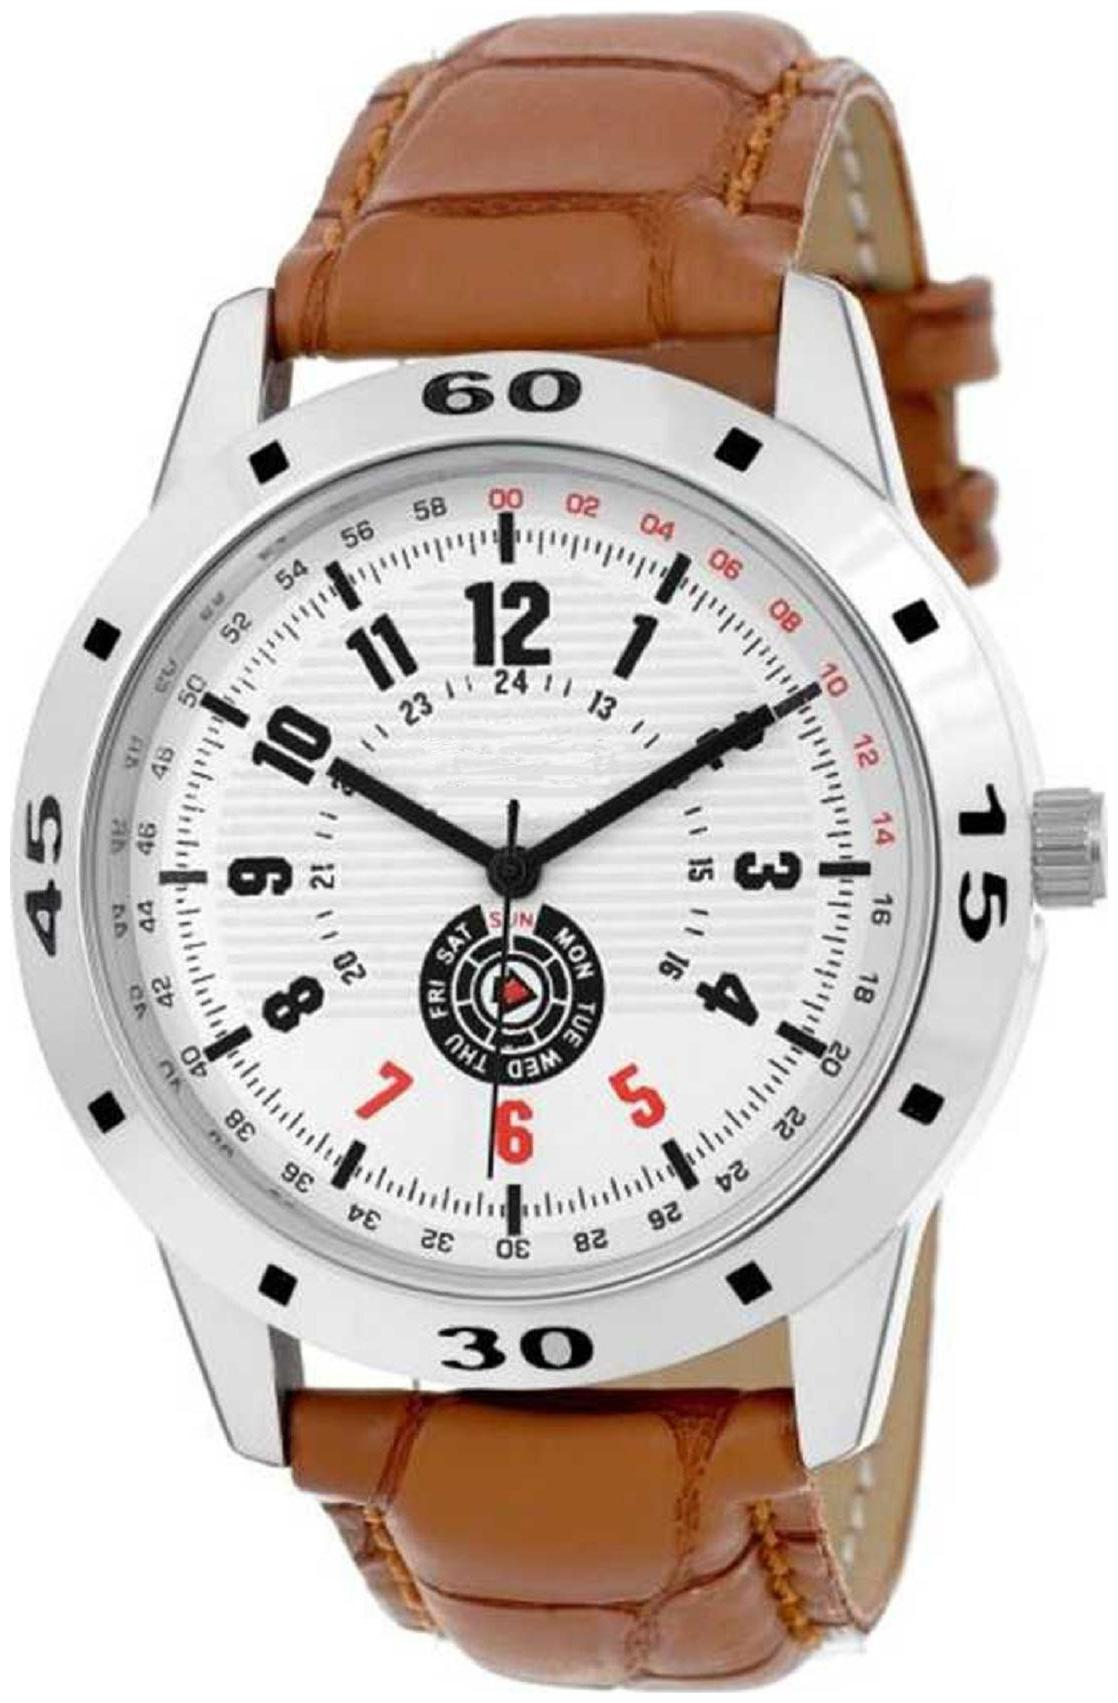 Hrv Analog Watch For Men and Boys